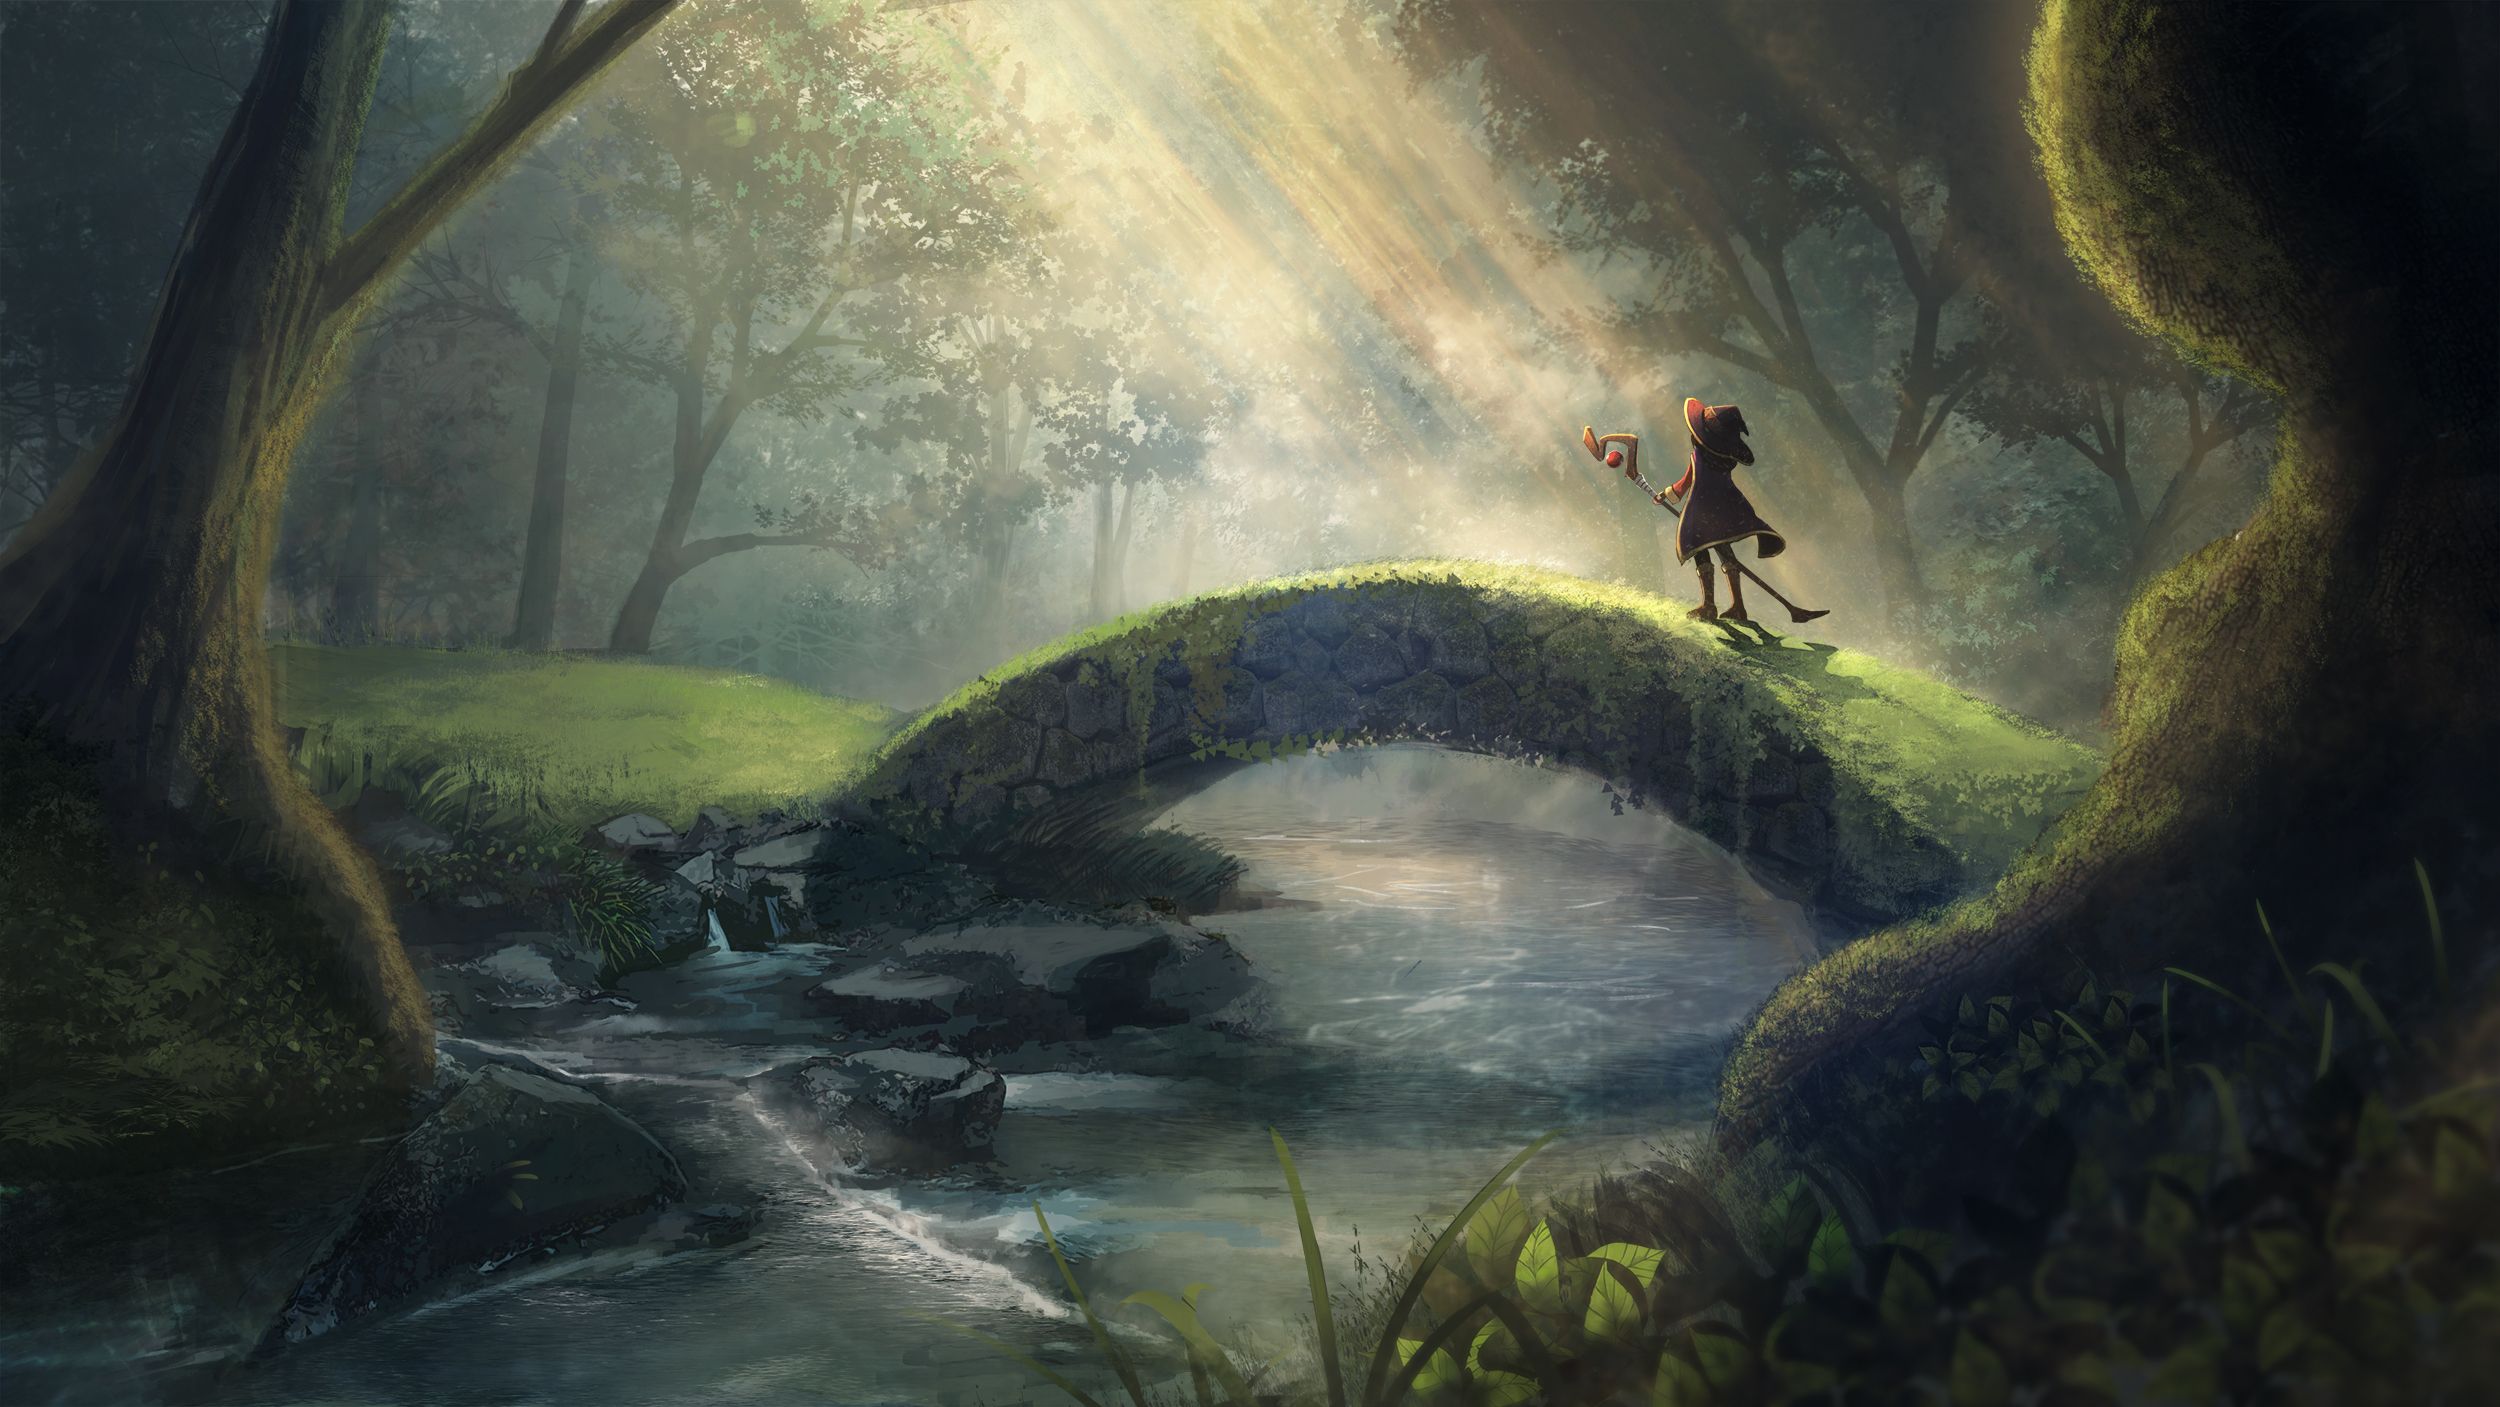 Anime 2500x1407 Kono Subarashii Sekai ni Shukufuku wo! Megumin nature forest bridge river anime girls sunlight digital art trees